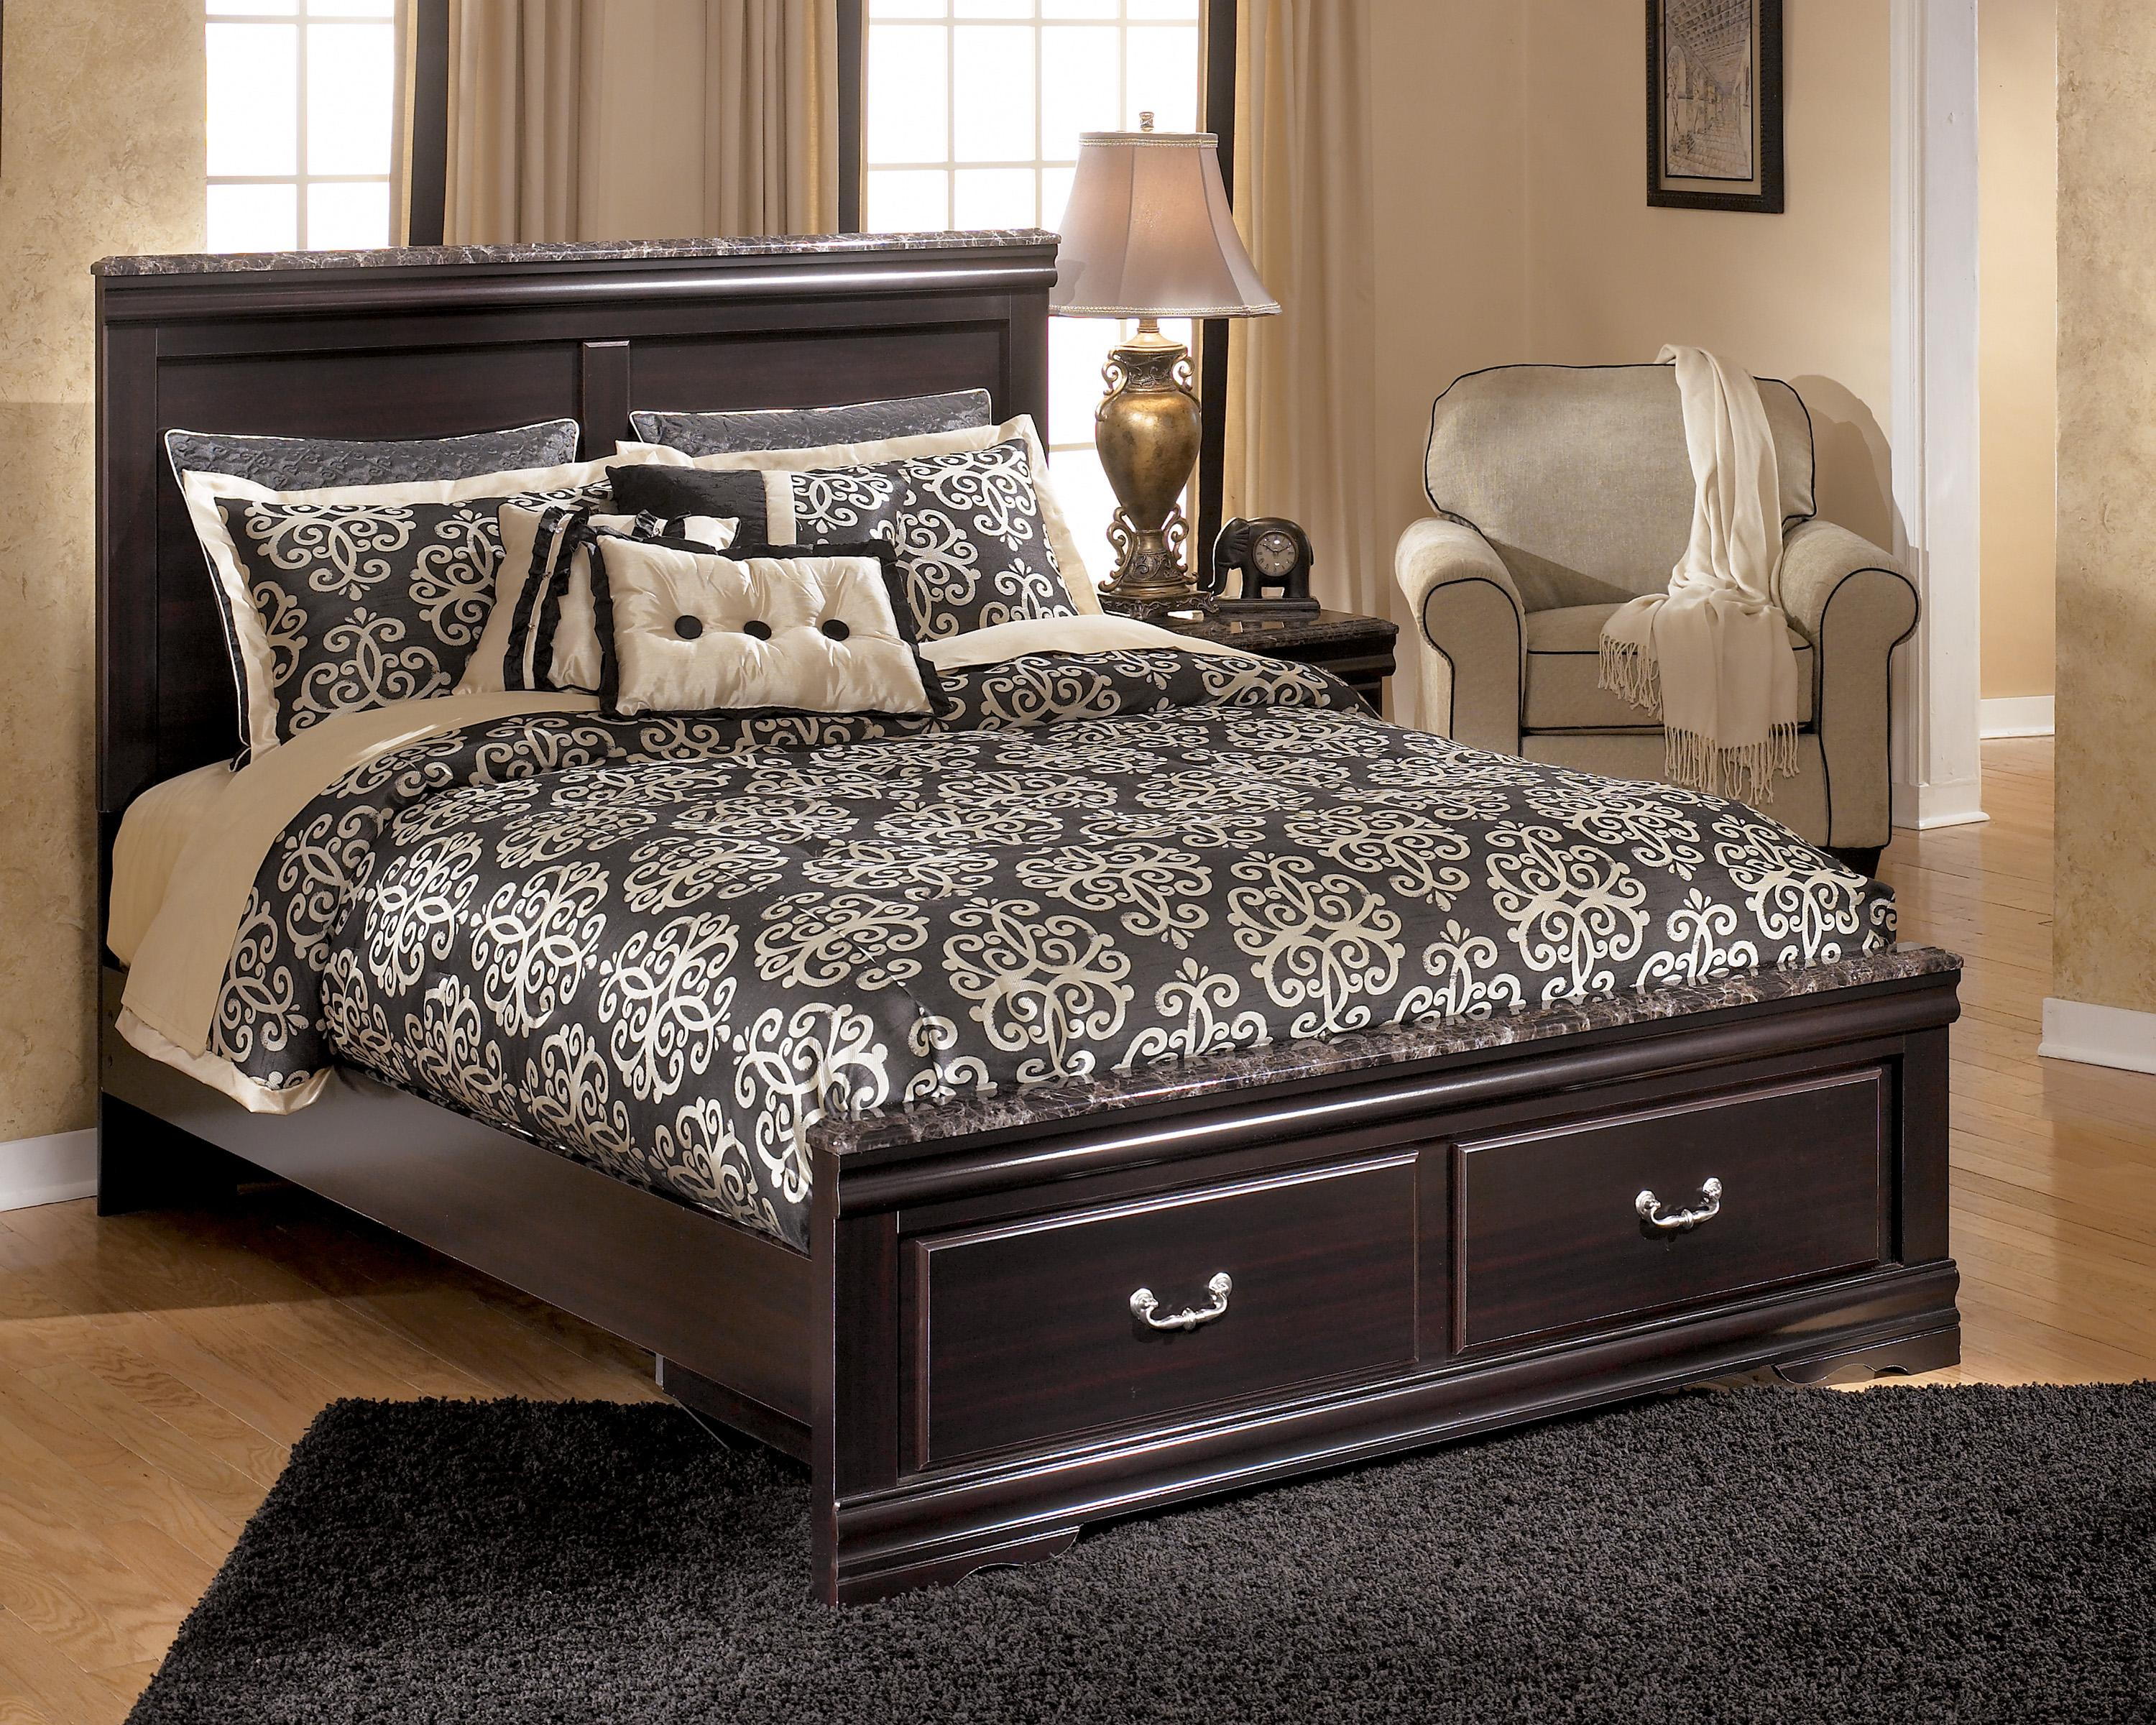 Signature Design By Ashley Esmarelda Queen Storage Bed With 2 Footboard Drawers Faux Marble